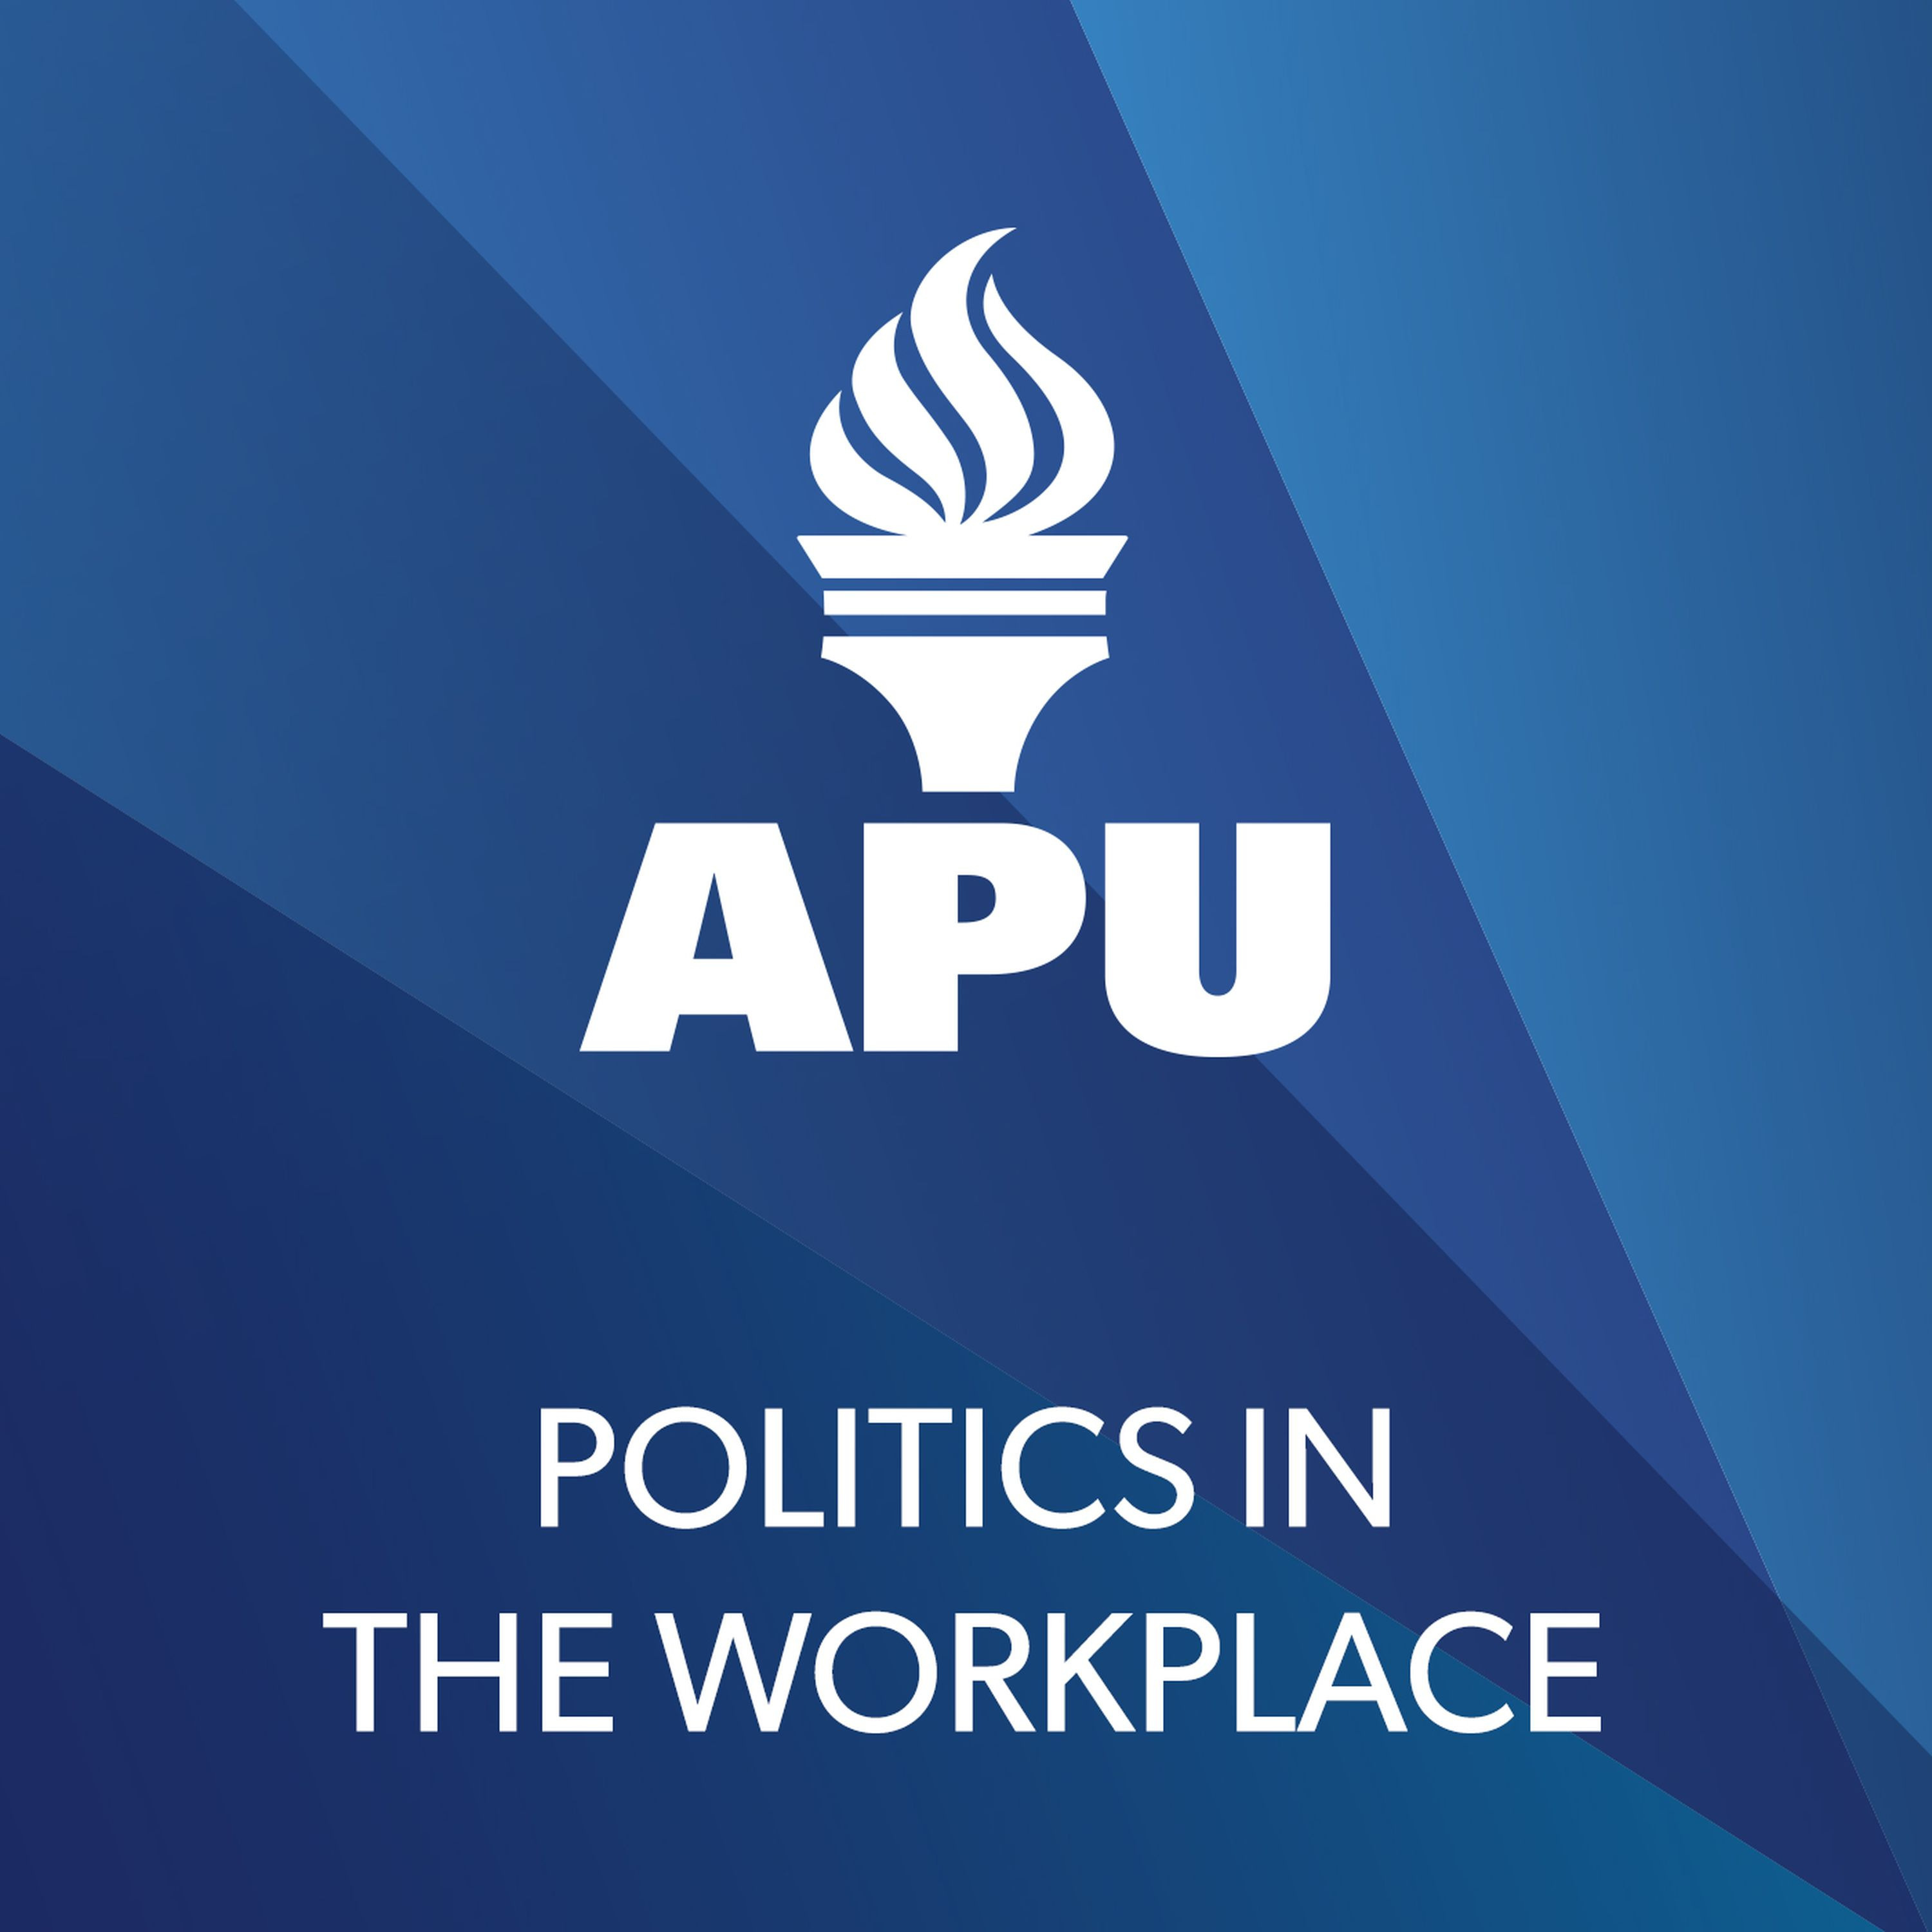 APU Politics In The Workplace - Episode 4 - Nurses Working Overtime, Is It Safe?